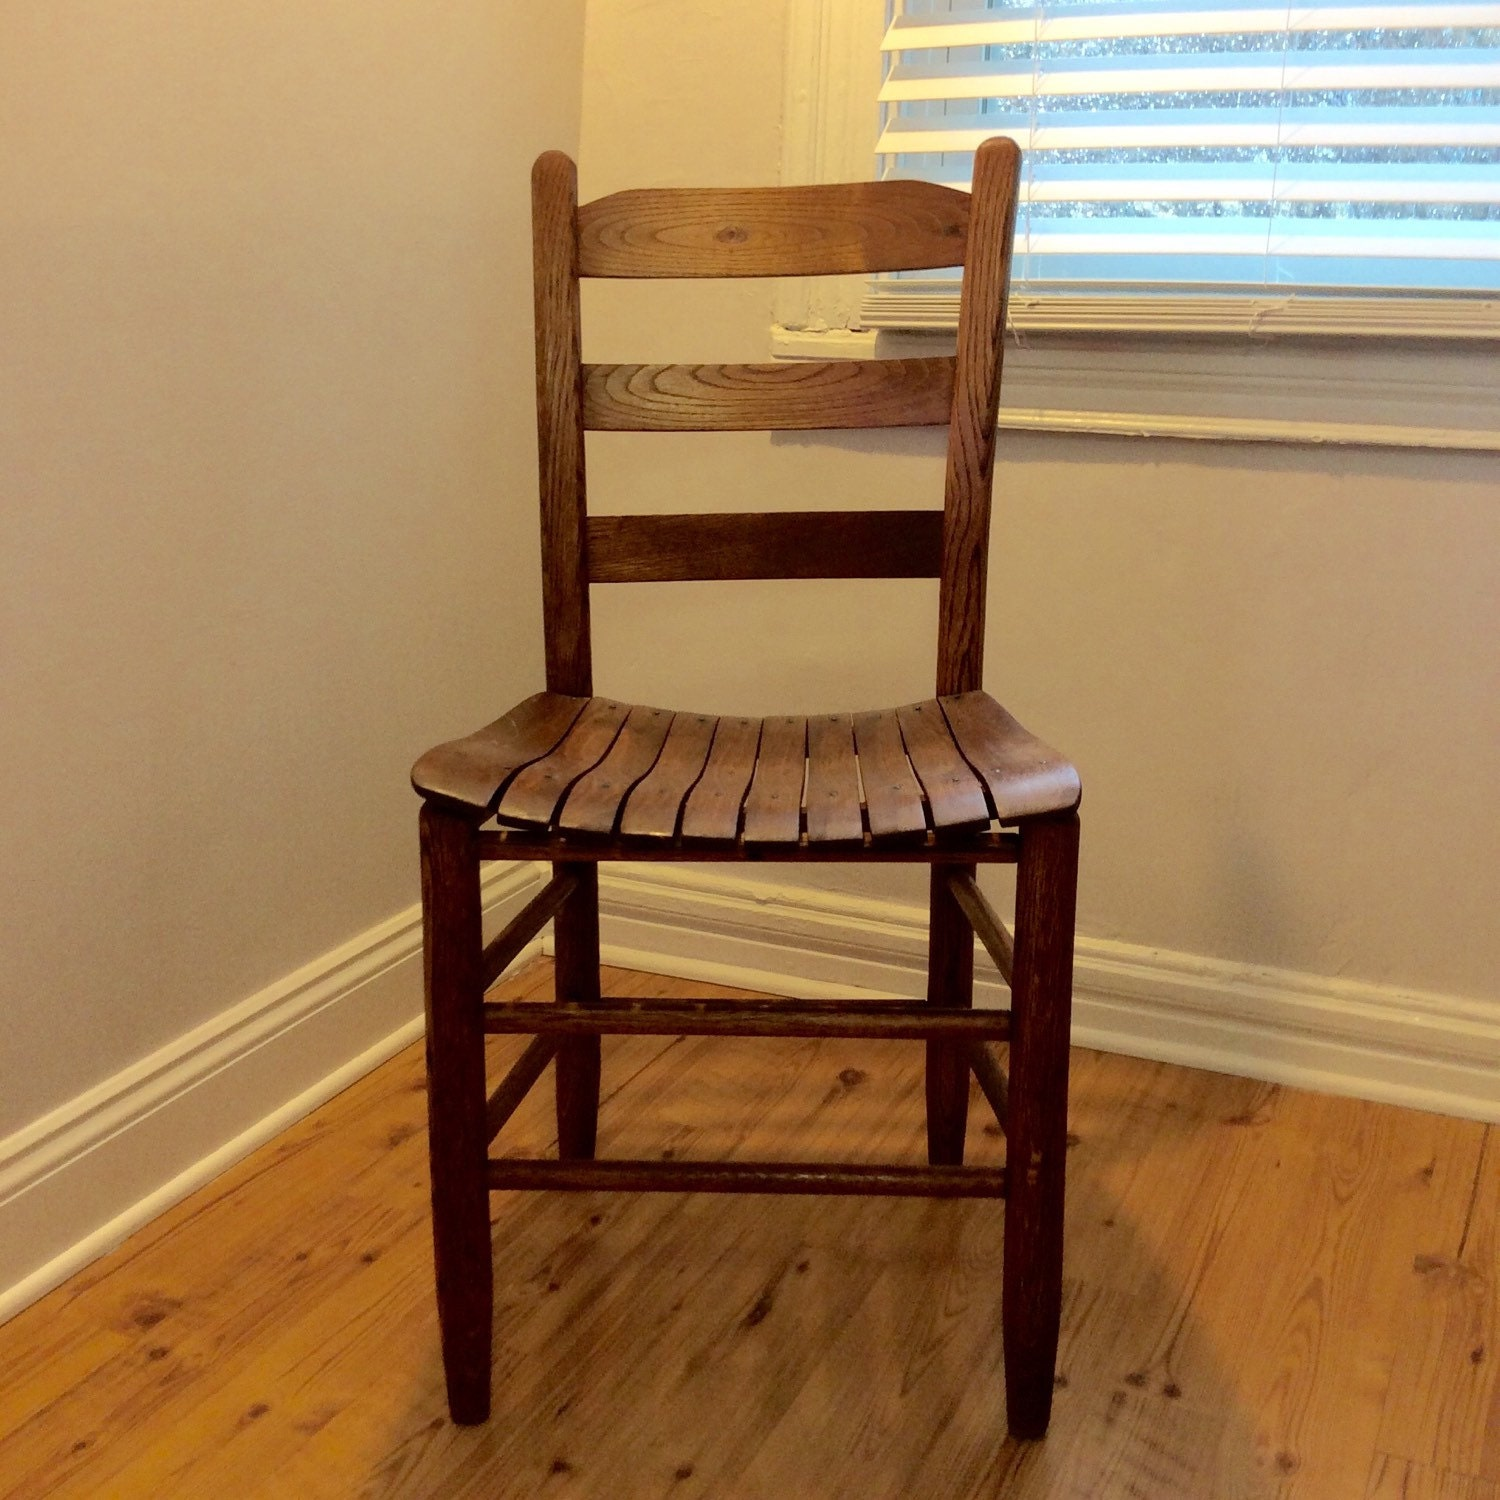 Antique Ladder Back Chair with a Slat Seat, Rustic Americana Shaker Style  Seat, Desk Chair, Accent Chair, Rustic Wood Chair - Antique Ladder Back Chair With A Slat Seat, Rustic Americana Shaker